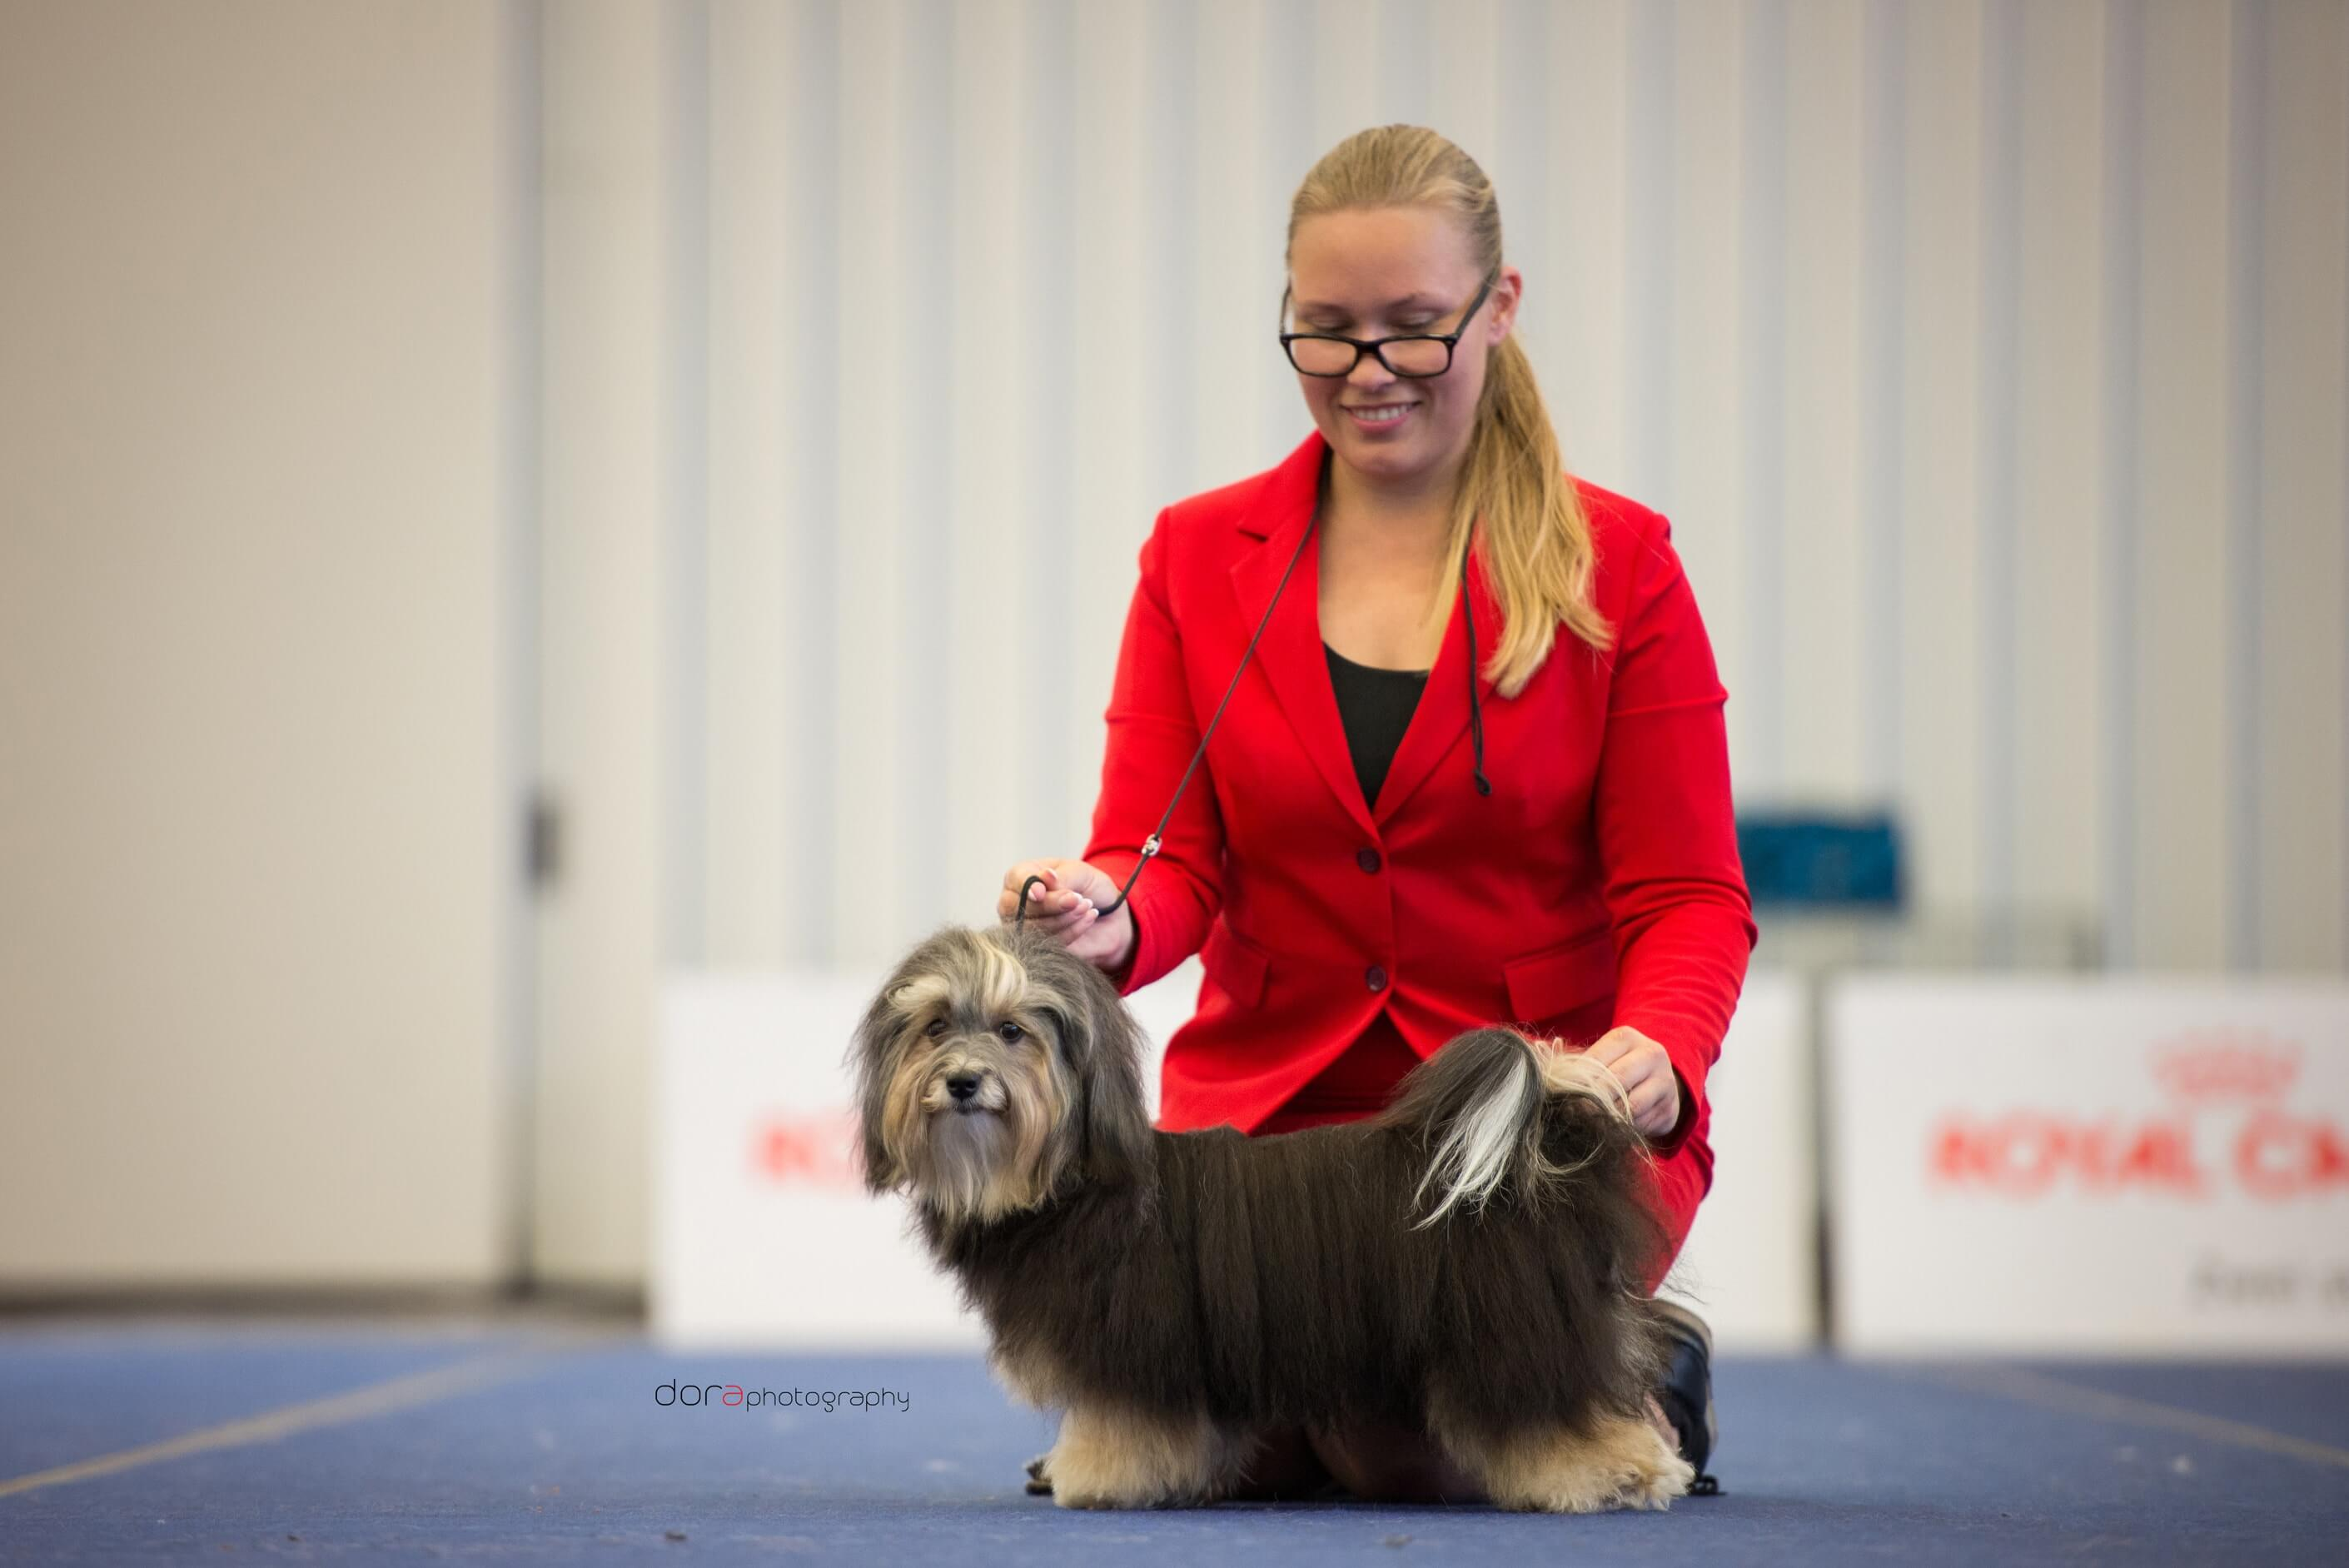 European Dog Show 2019, Wels - Austria, 16 June 2019